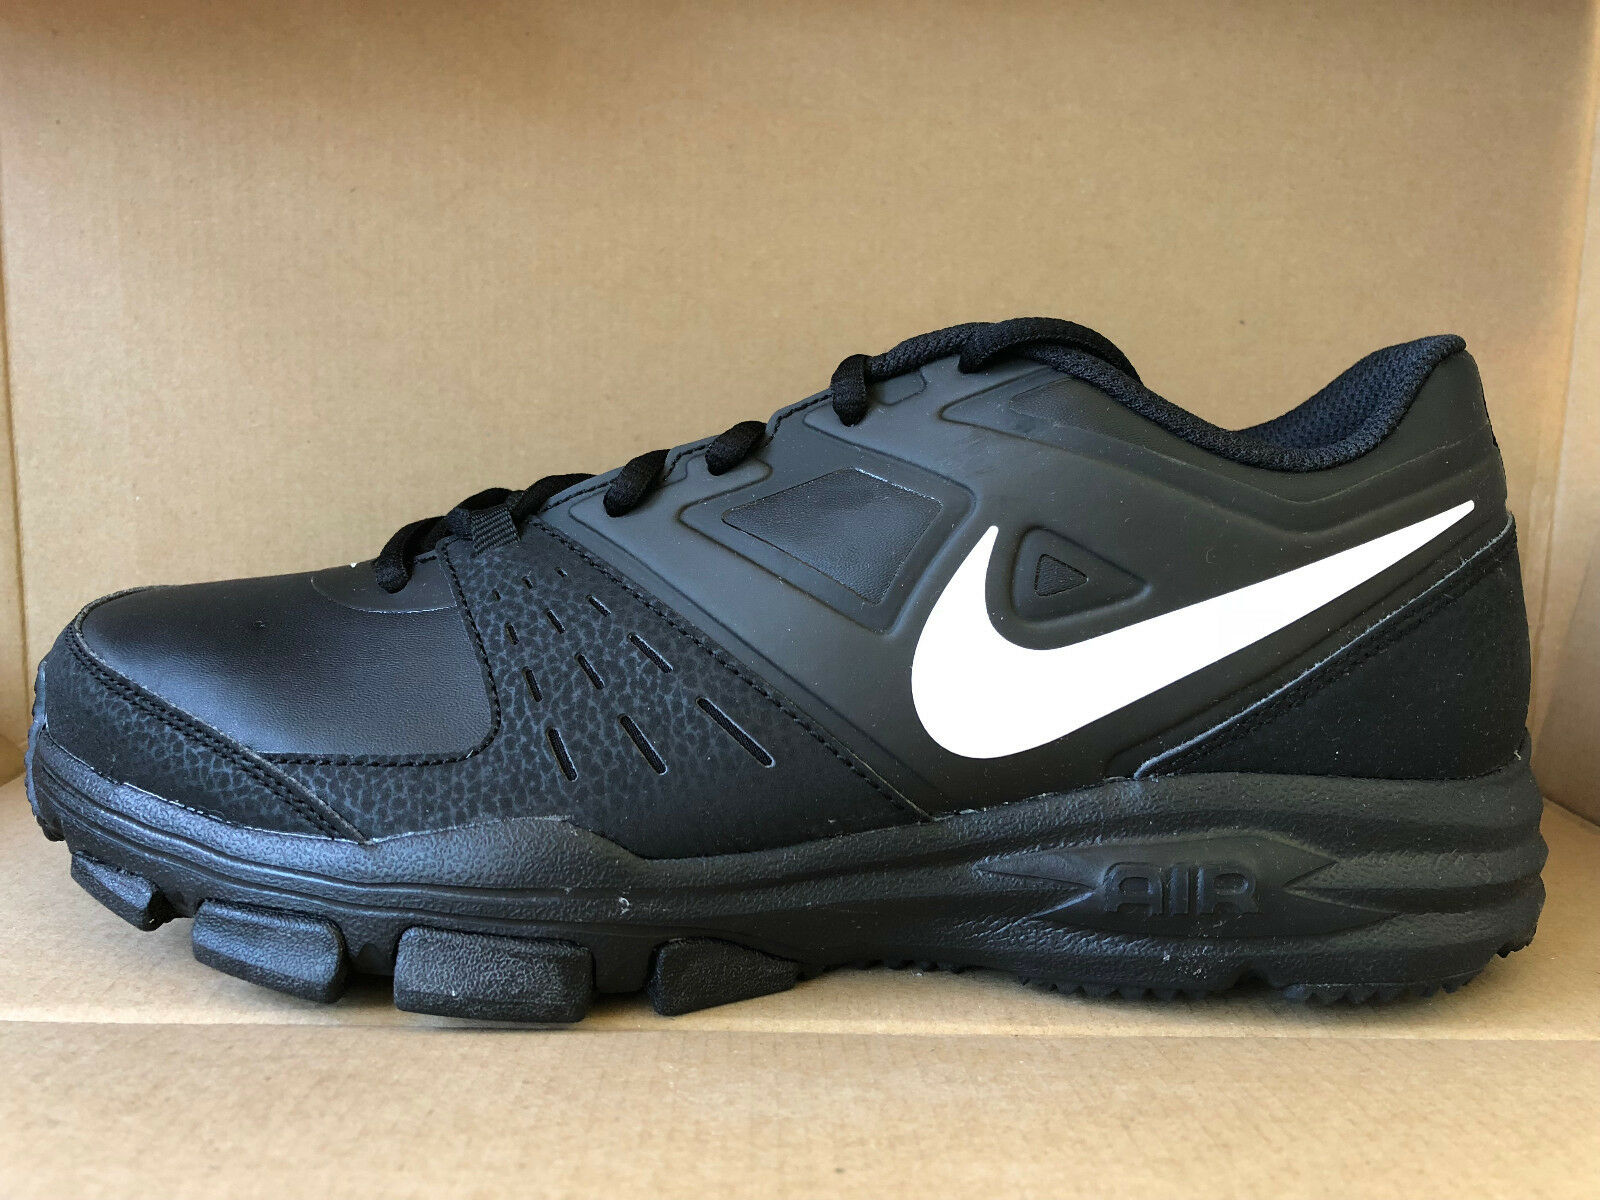 Hombre NIKE ONE AIR TR TB (4E) ONE NIKE Zapatos  Negro Blanco 6582018 010 9cded1